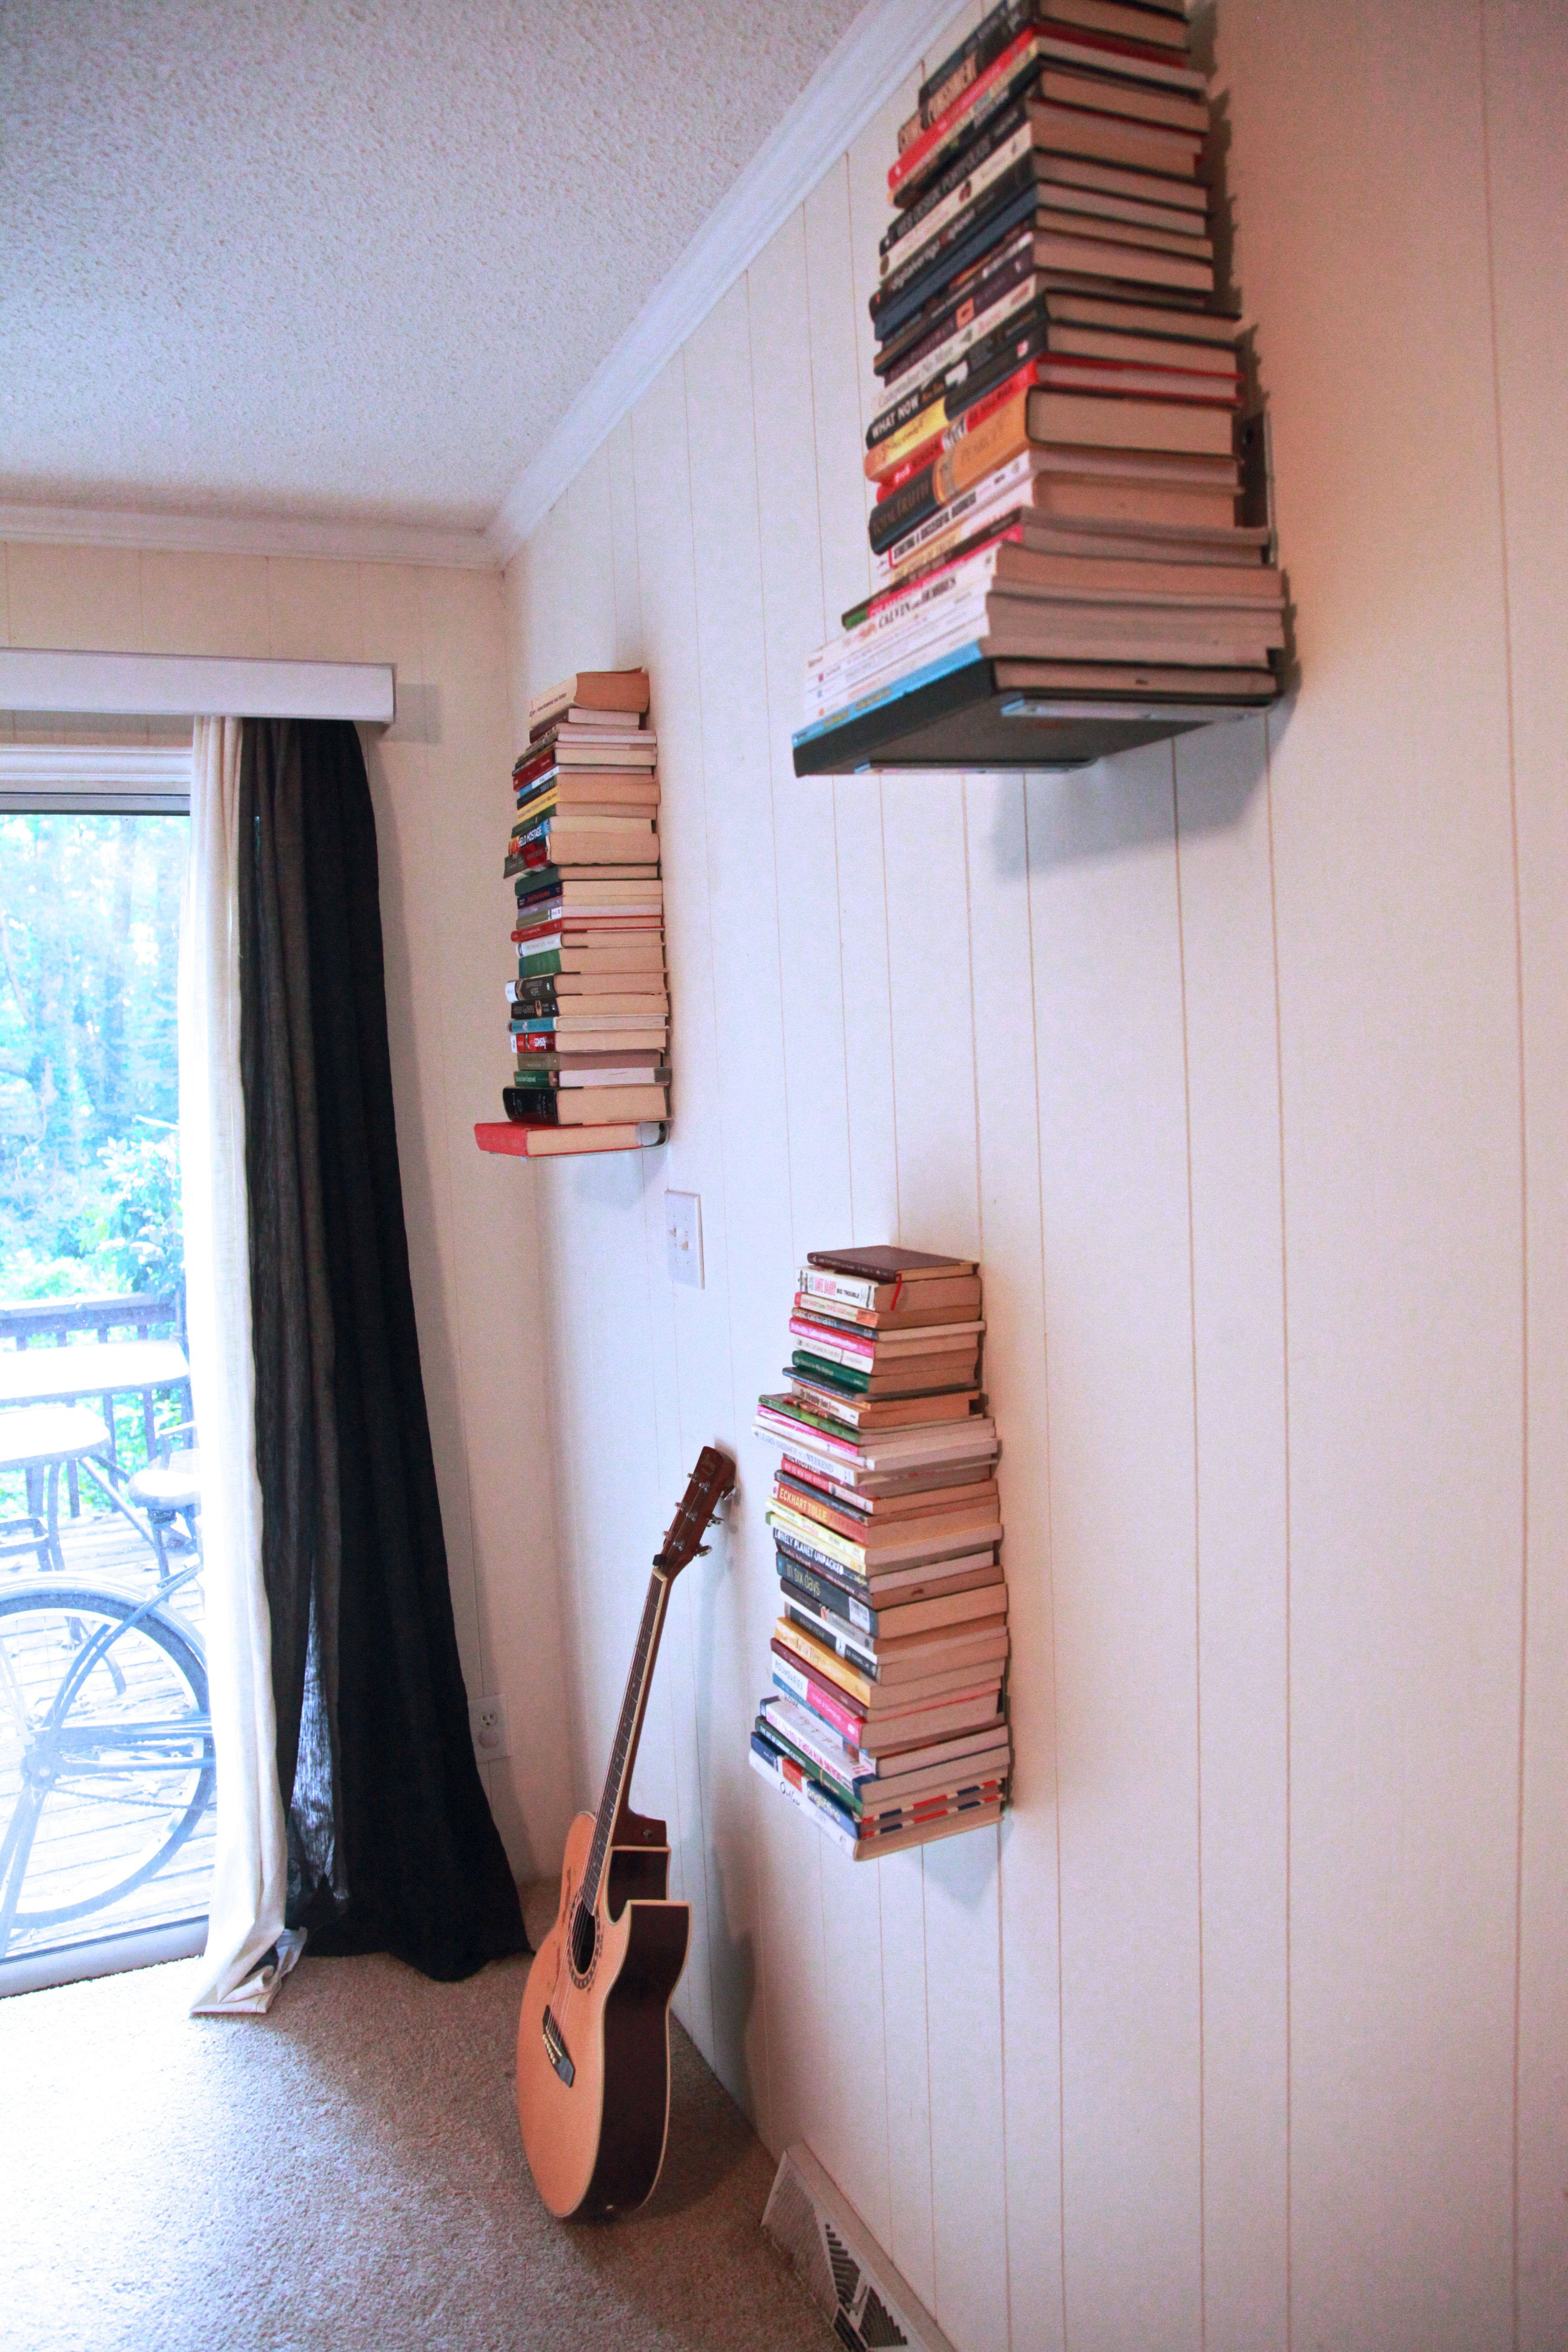 Buy Simple Metal L Shaped Brackets Screw Them In The Wall And Start Stacking No Glueing Or Ruining Books Bookcase White Wood Bookcase White Bookcase